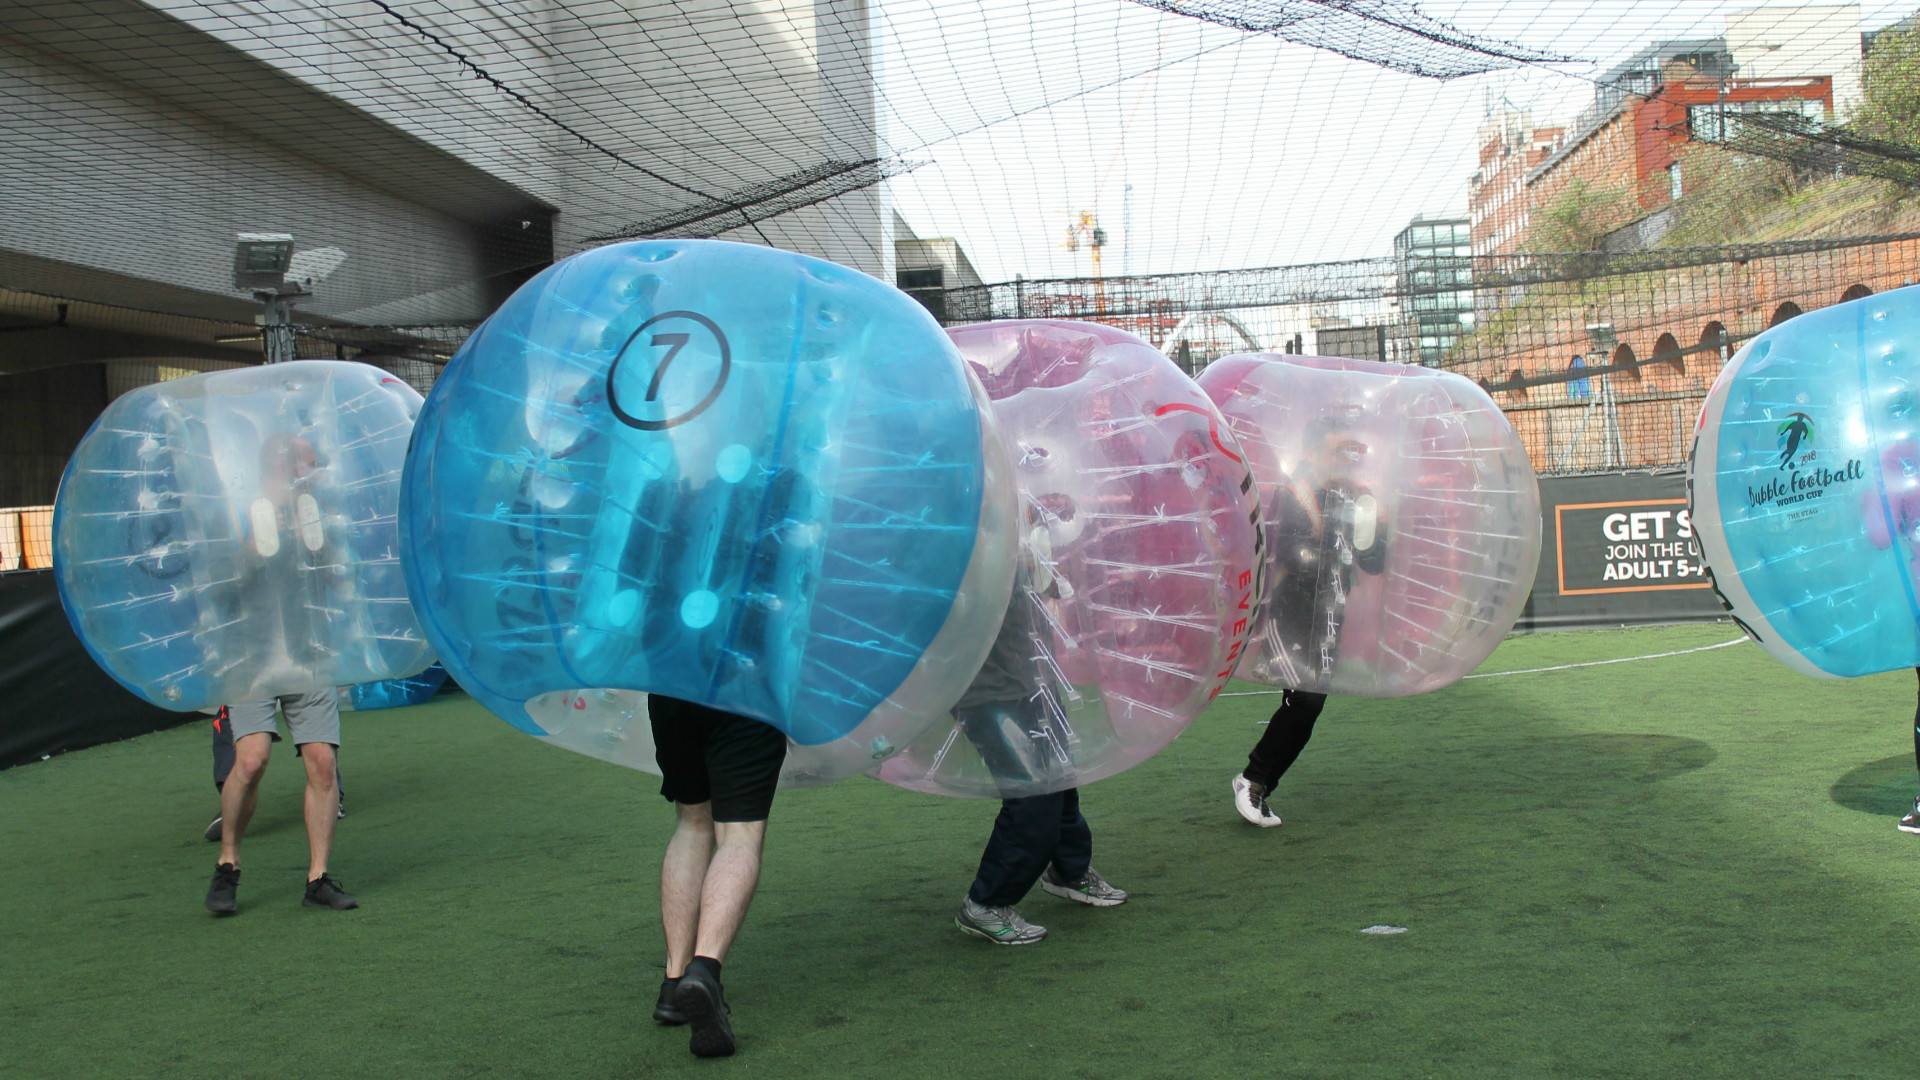 The Bubble Football World Cup